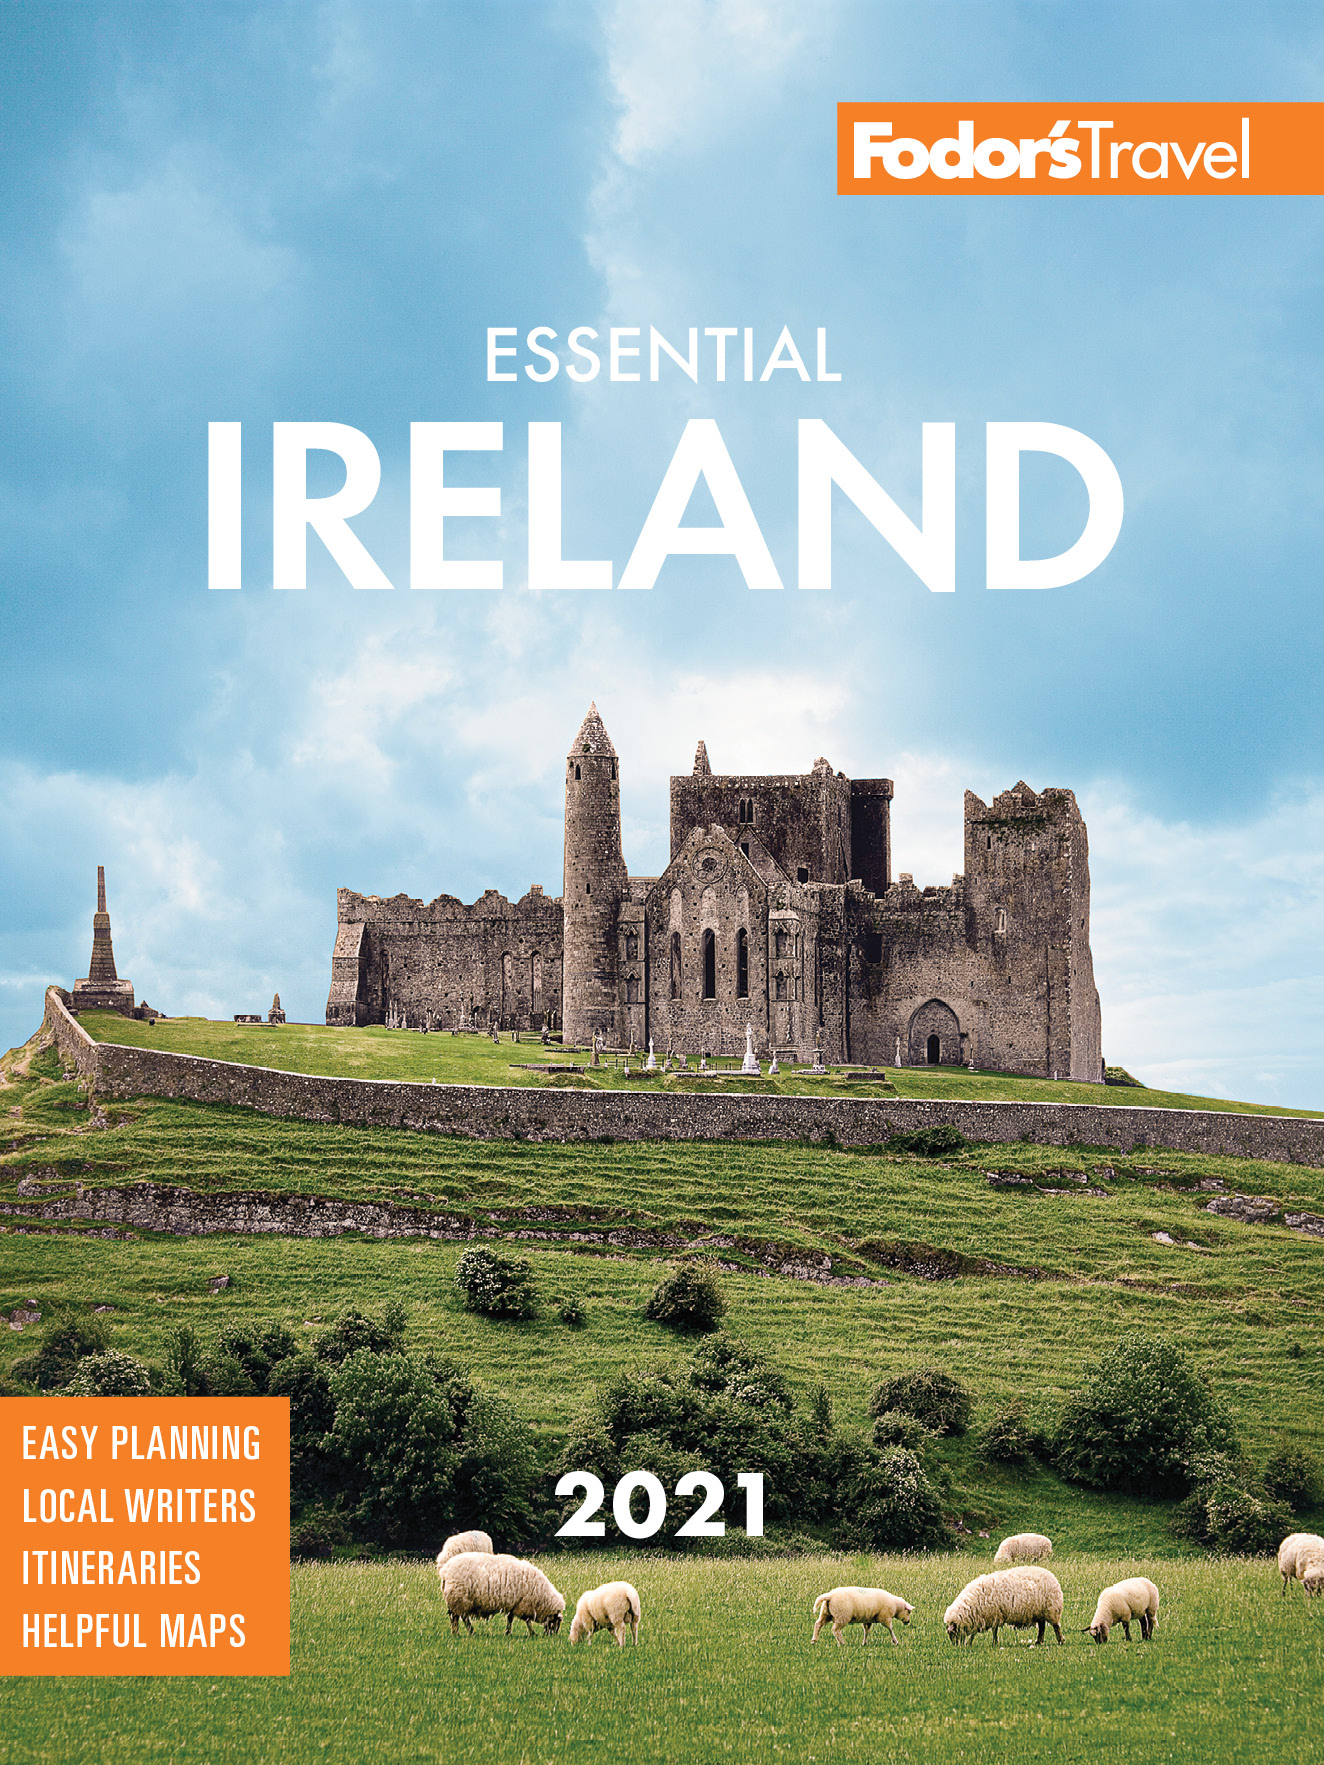 Fodor's Essential Ireland 2021